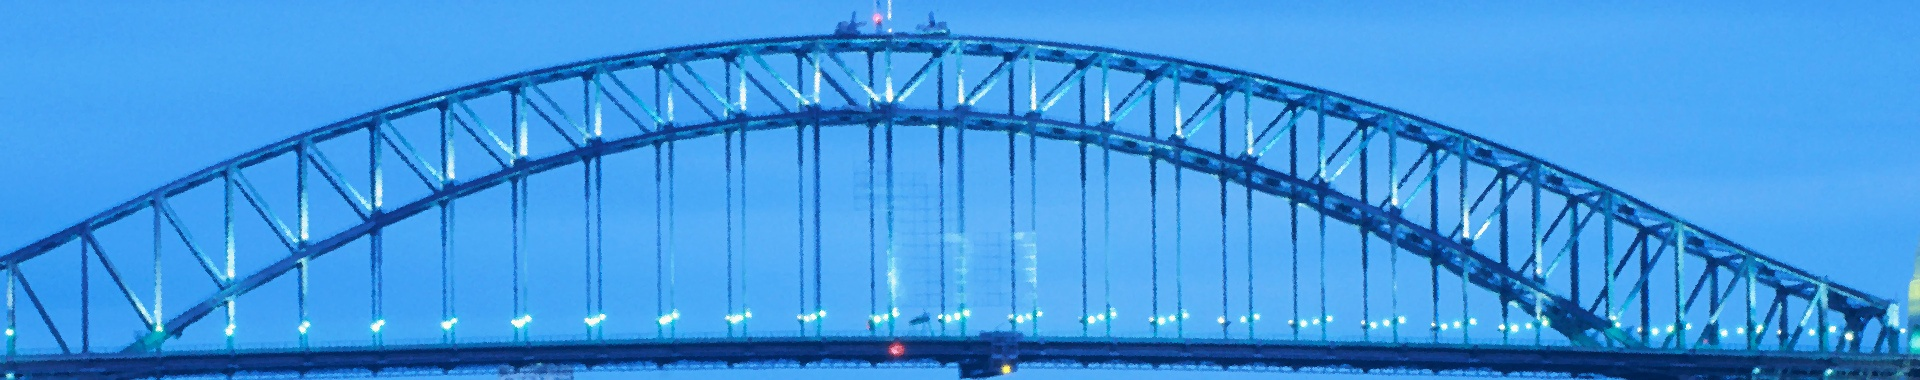 Banner with a bridge (photo)